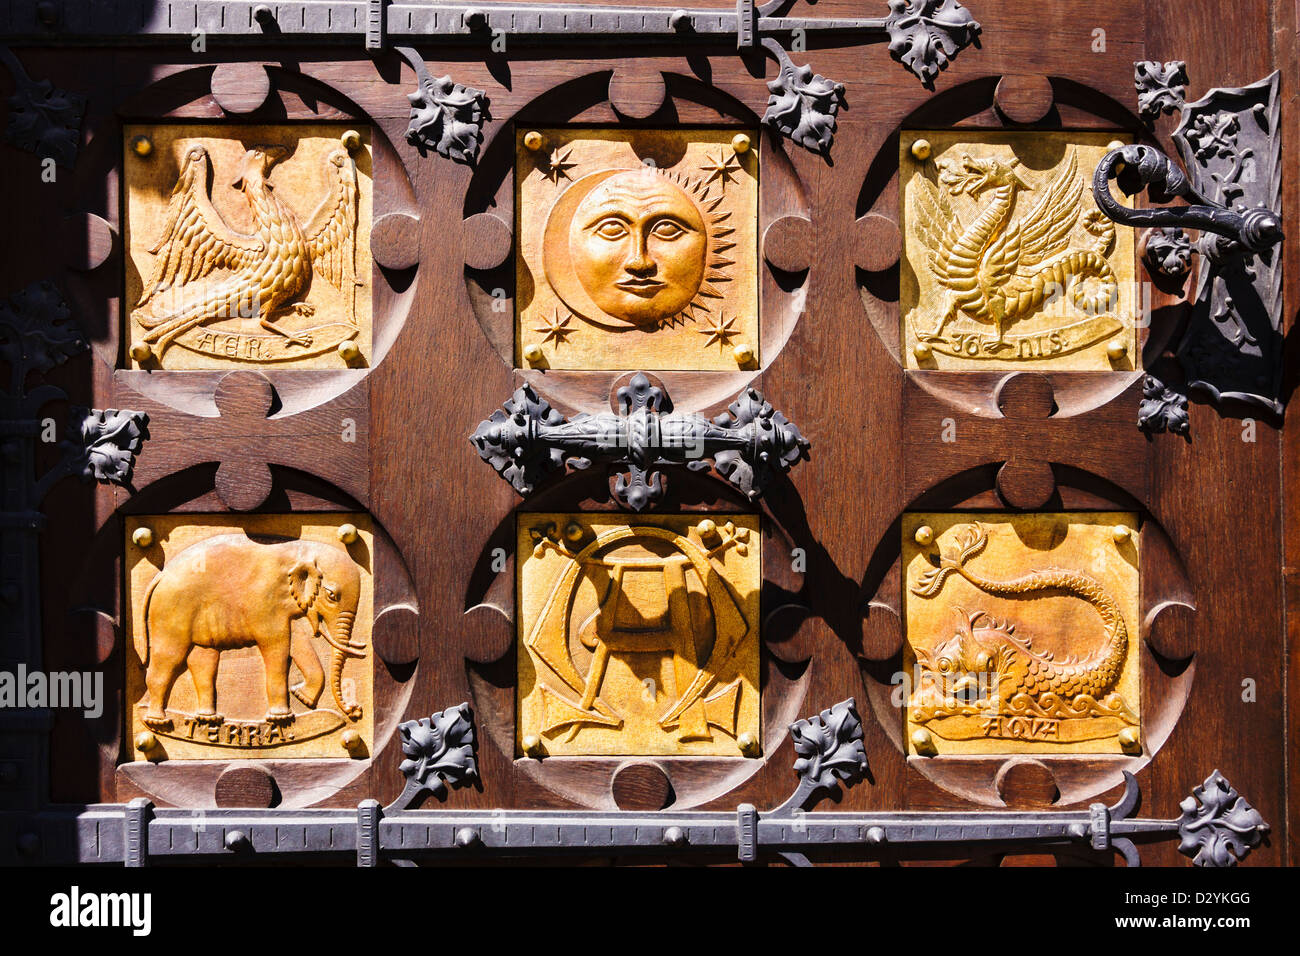 Classical elements carvings at the doors of the Abbey of Saint Thomas, where Gregor Mendel established modern genetics. - Stock Image